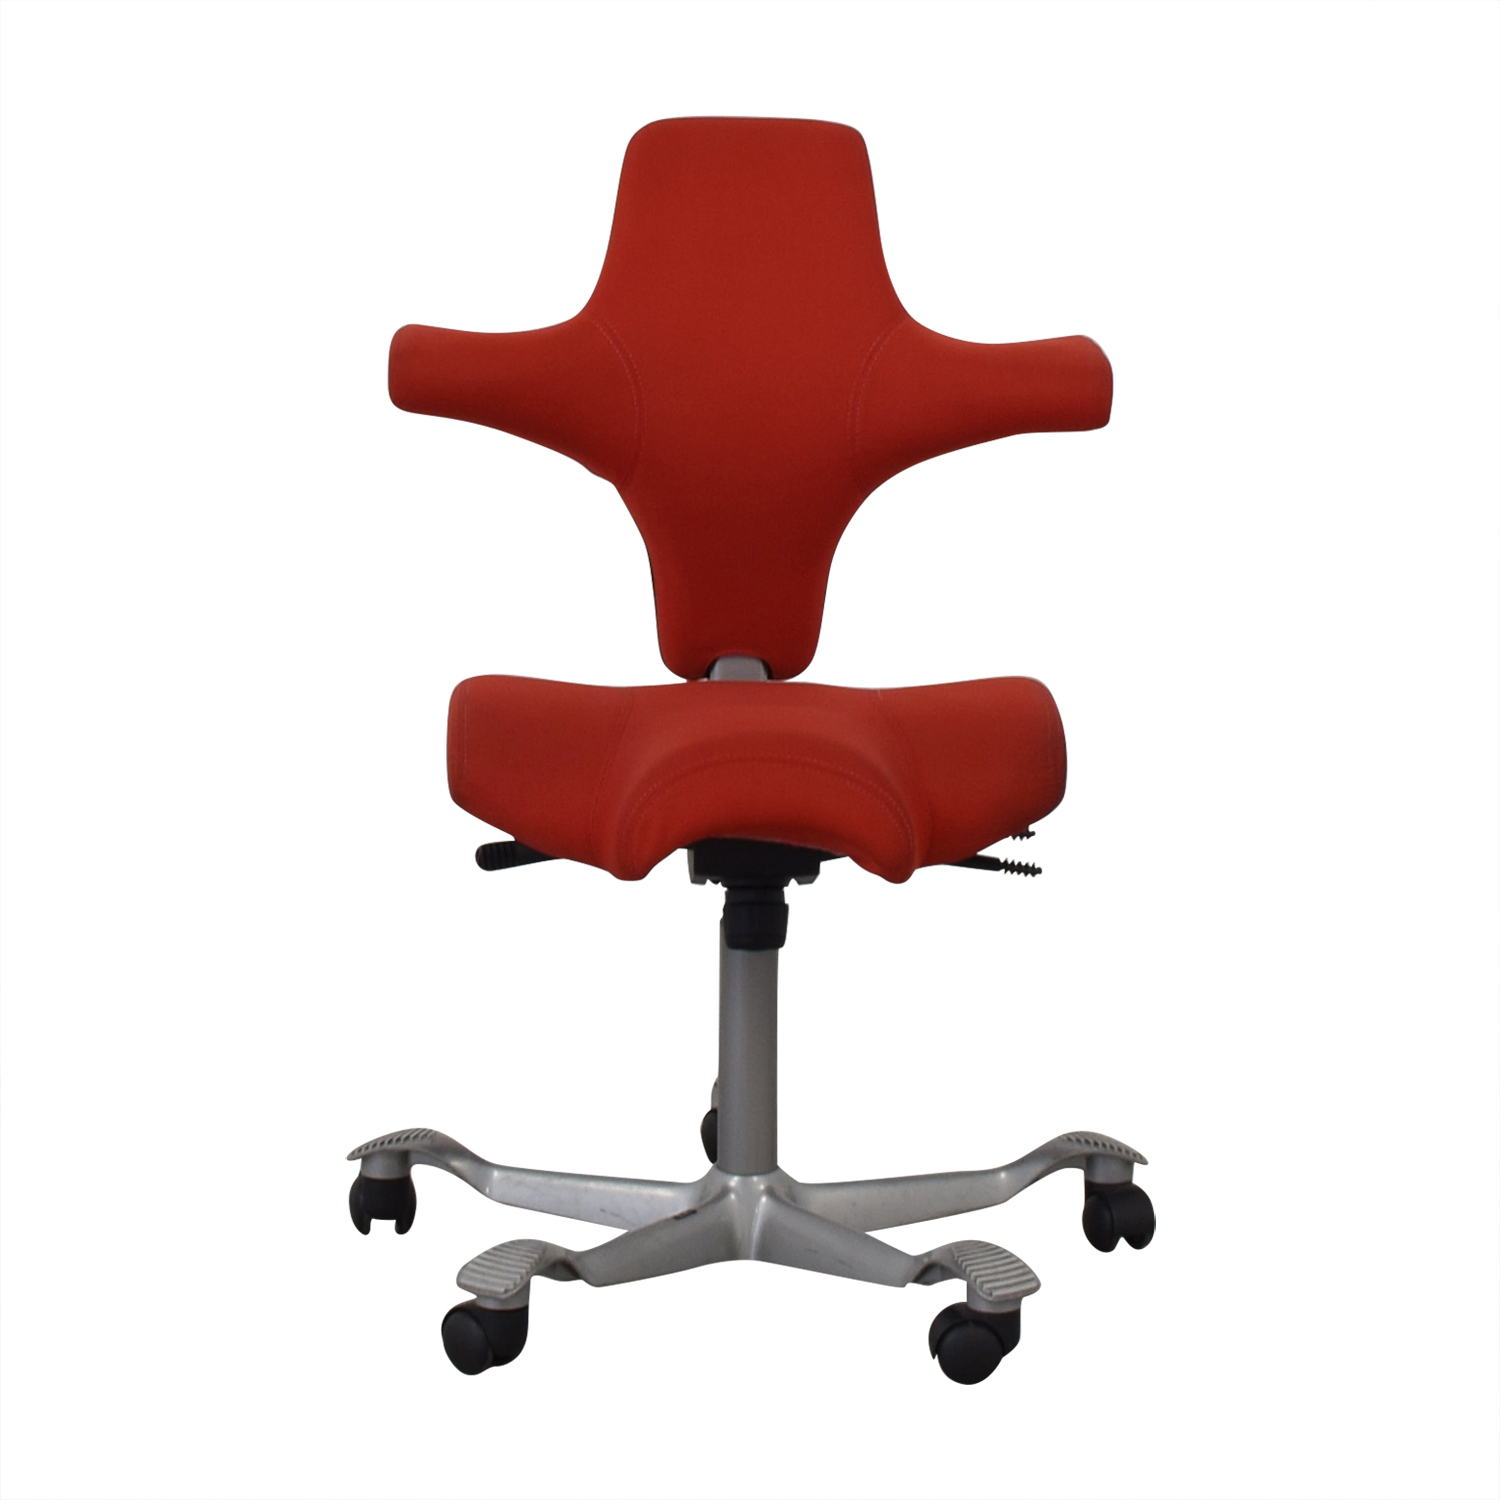 HÅG Capisco Office Chair / Chairs